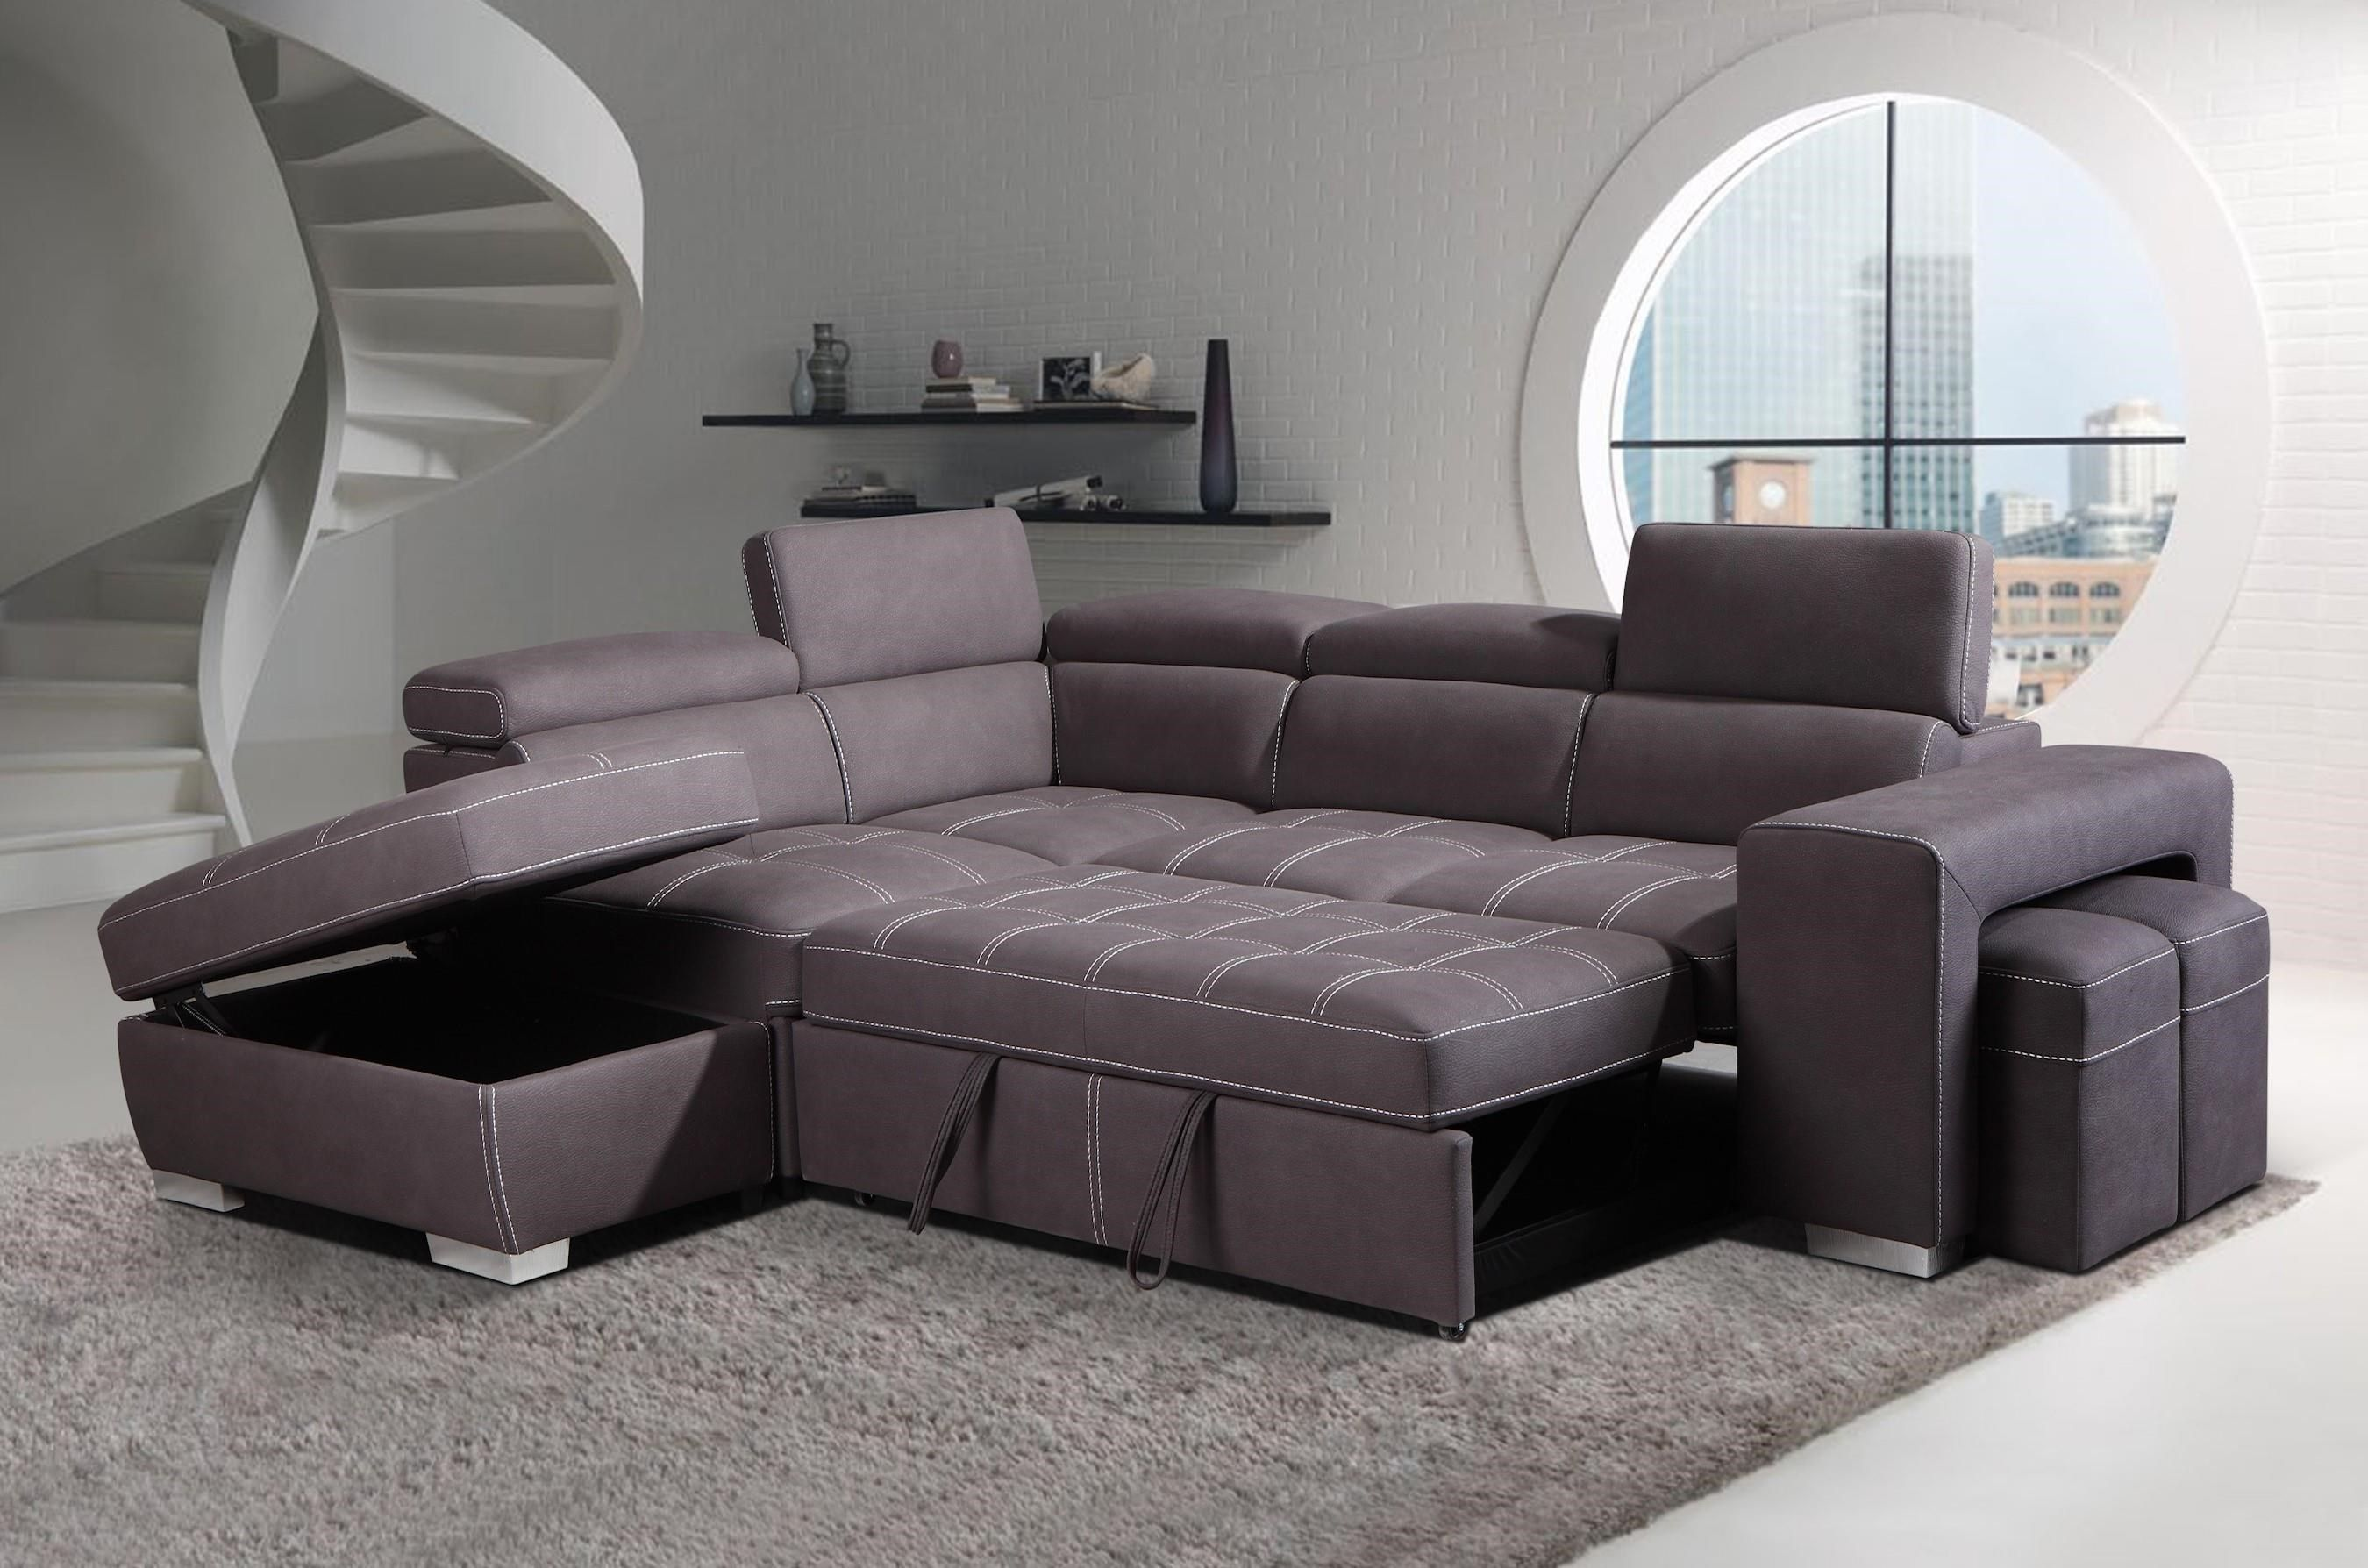 Prostiano Sectional By Amalfi Home Furniture At Abode Furniture Sectional Home Furniture